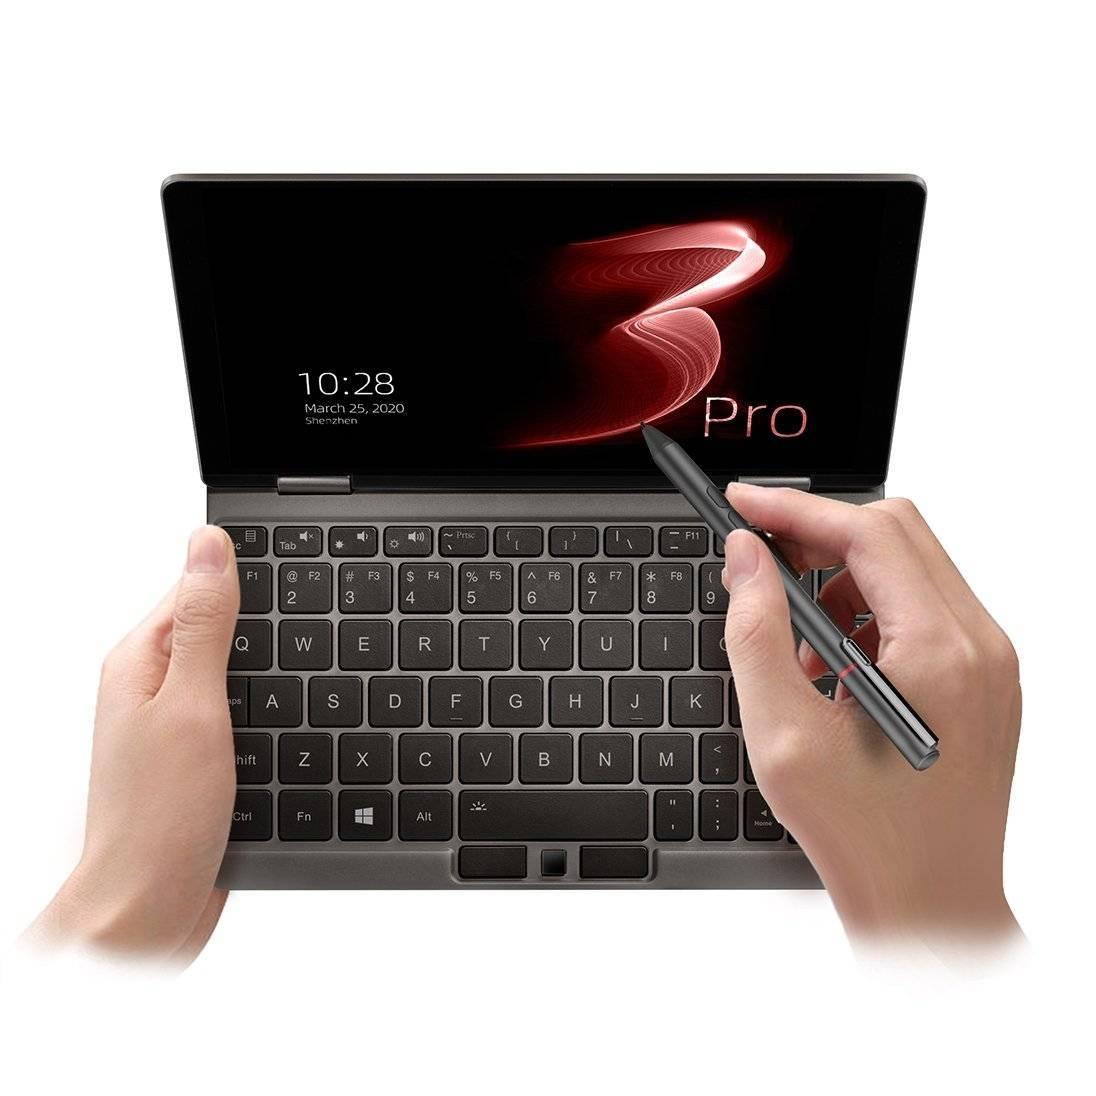 One Netbook Mix 3 Pro Platinum being used with the official One Netbook stylus to draw